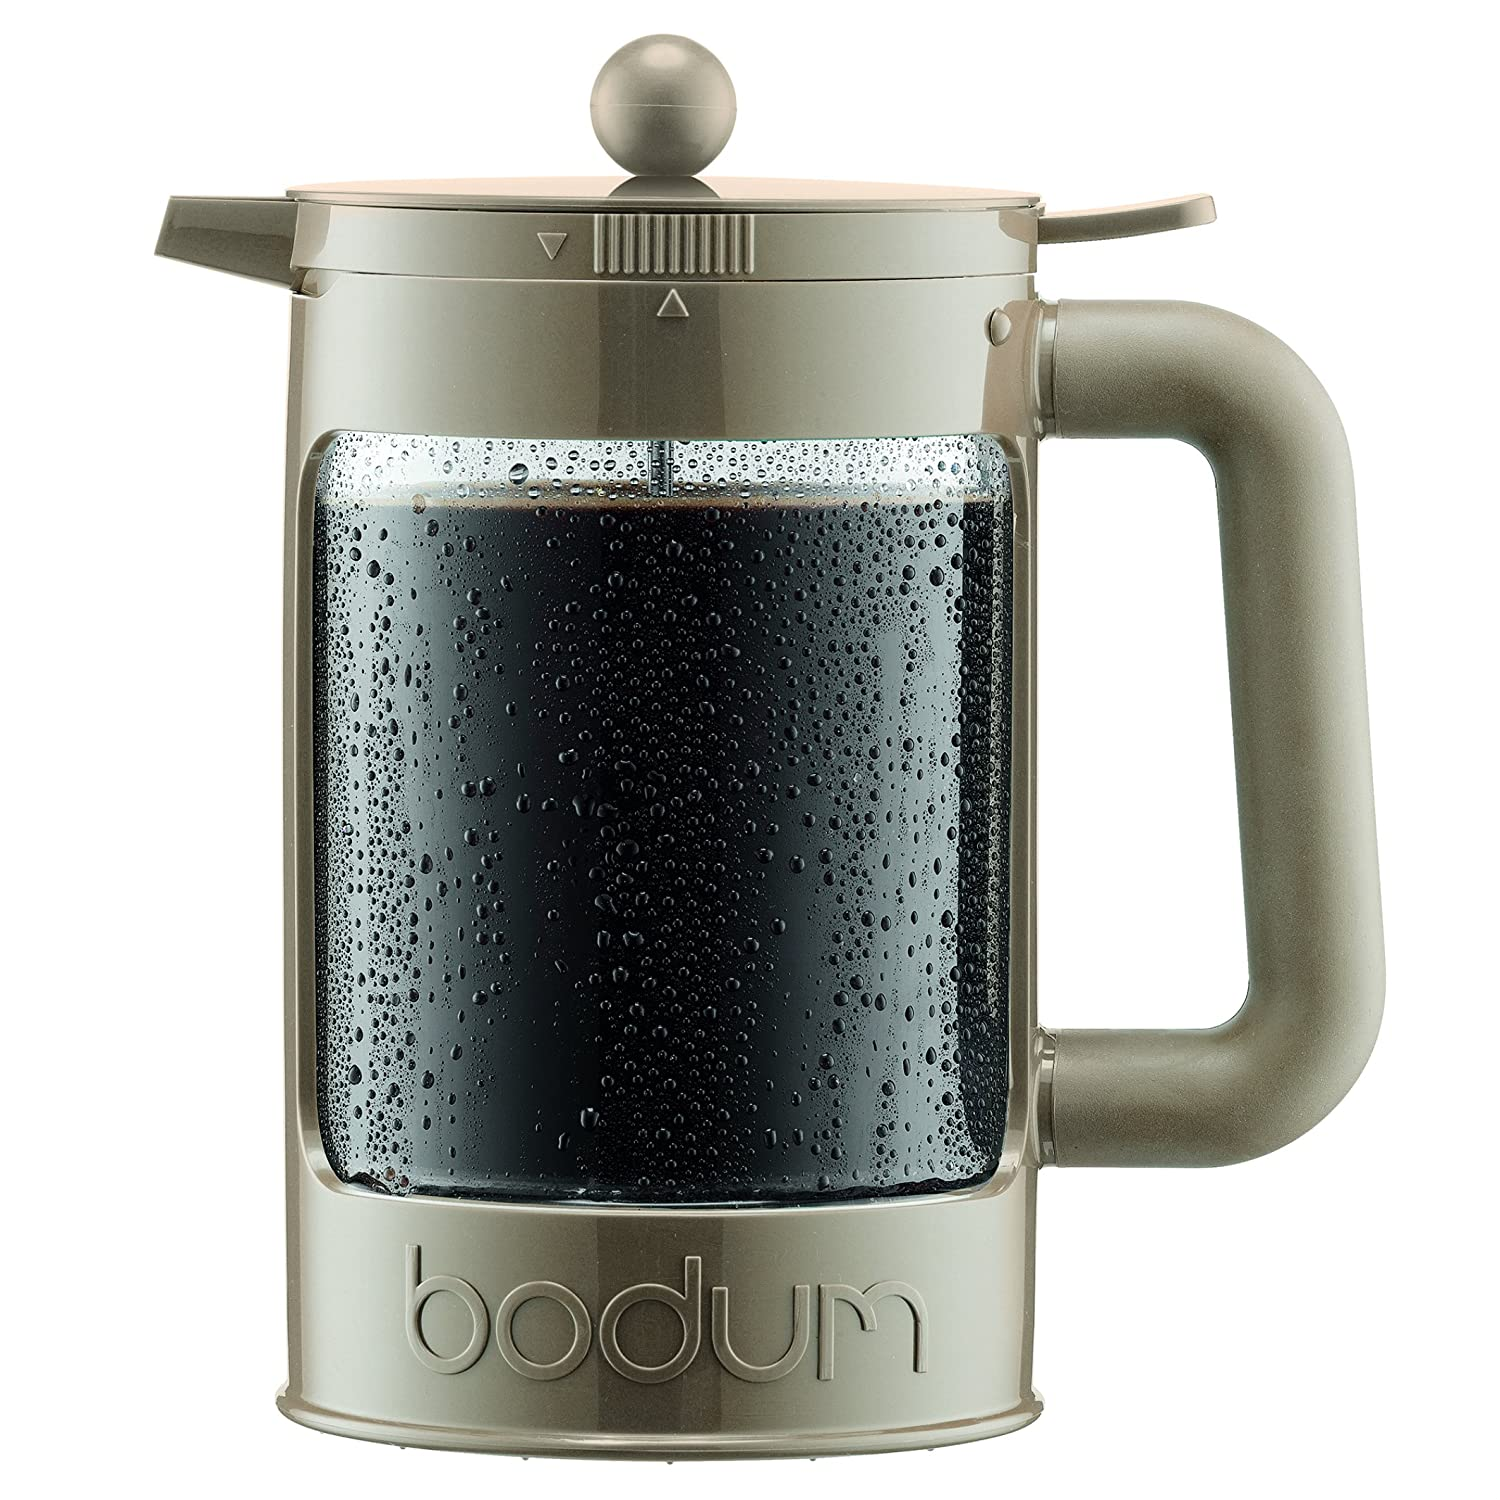 Bodum K11683-133 Bean Ice Coffee Maker, 12 Cup/51 oz, Sand